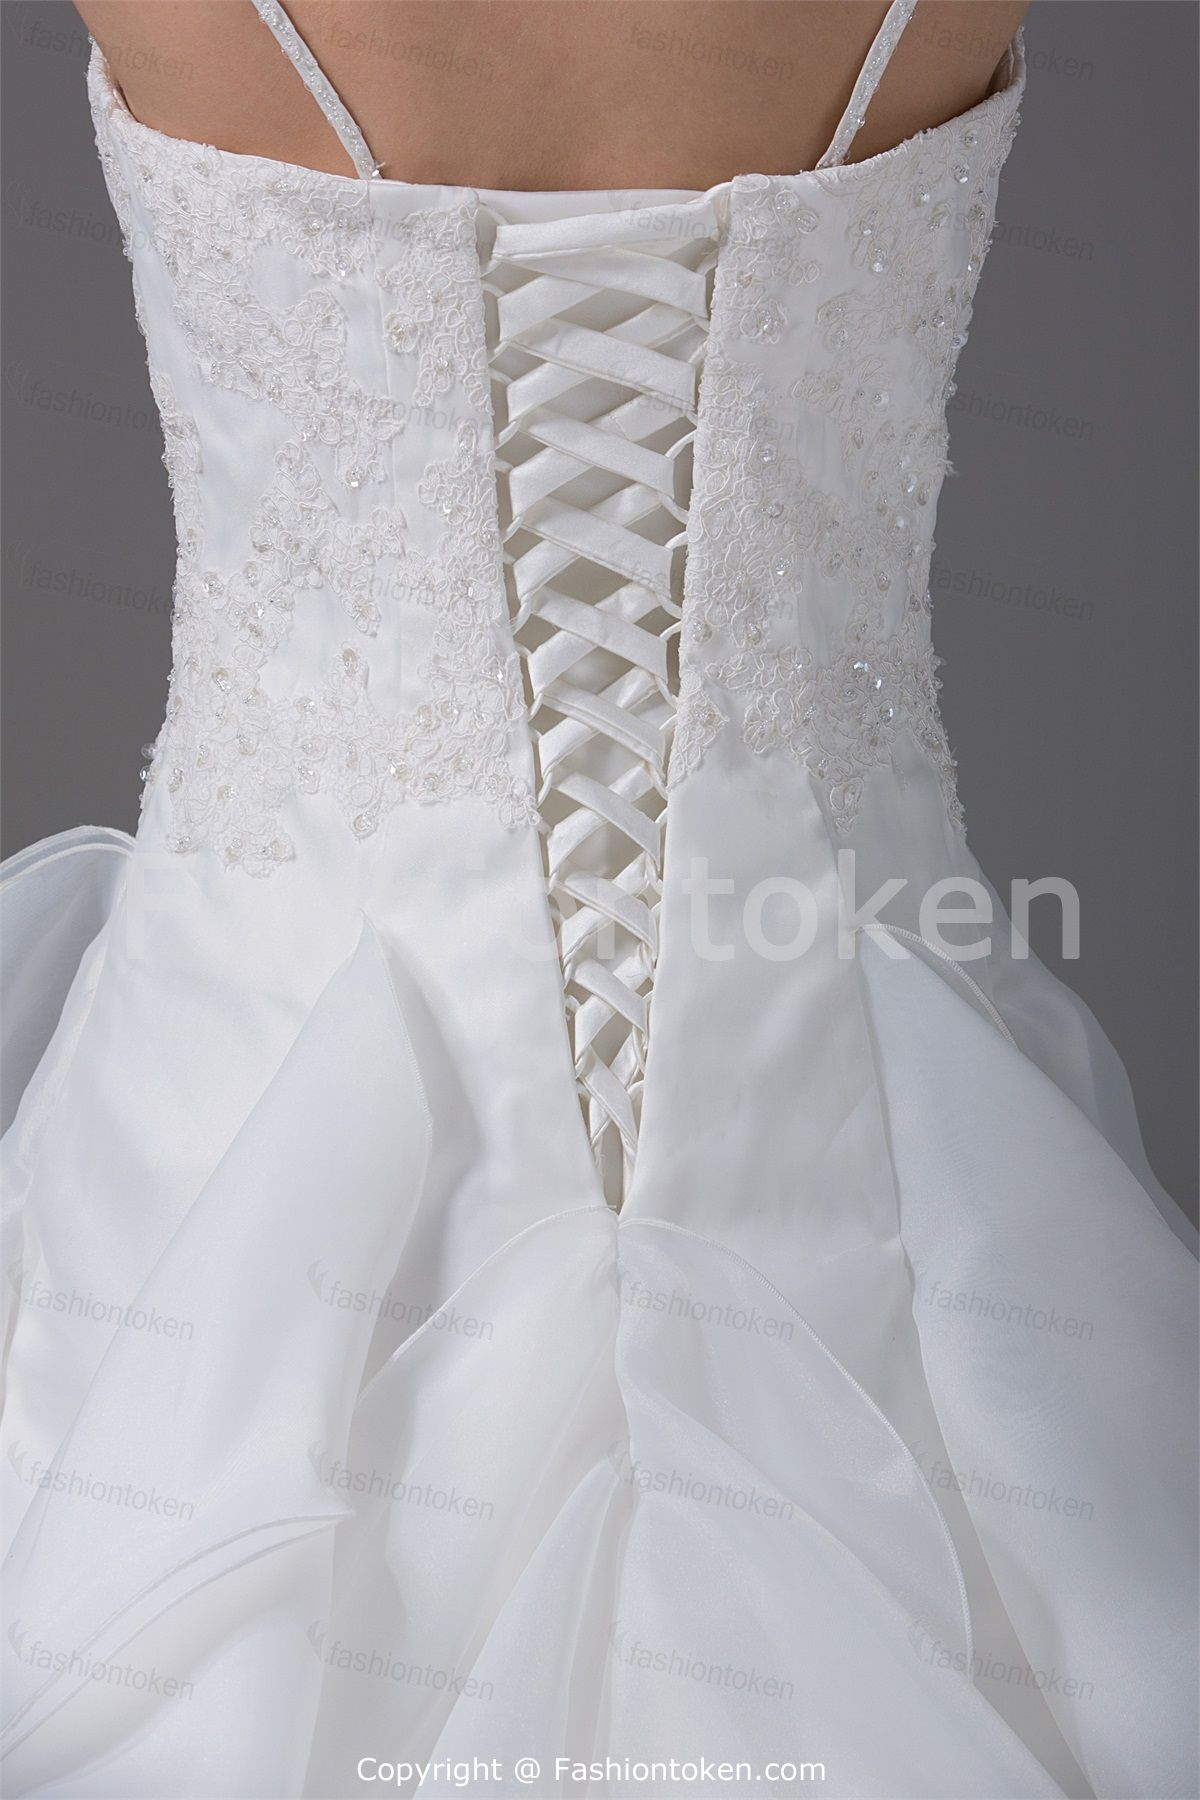 Corset-back Wedding Dress I just want it open to see skin | Wedding ...